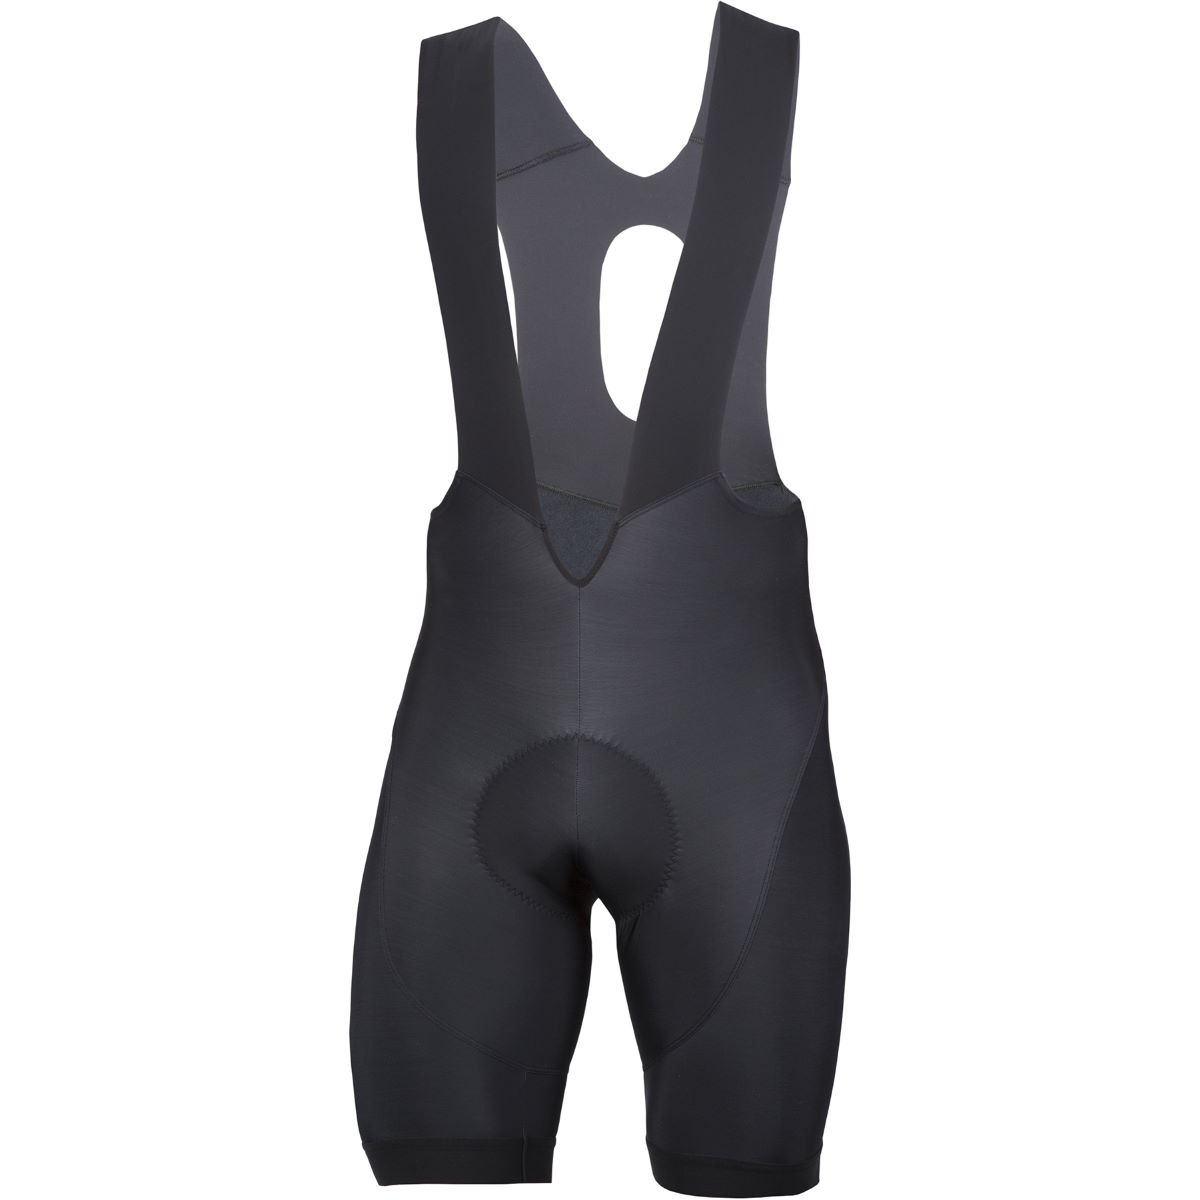 Etxeondo Team Edition Thermo Bib Shorts